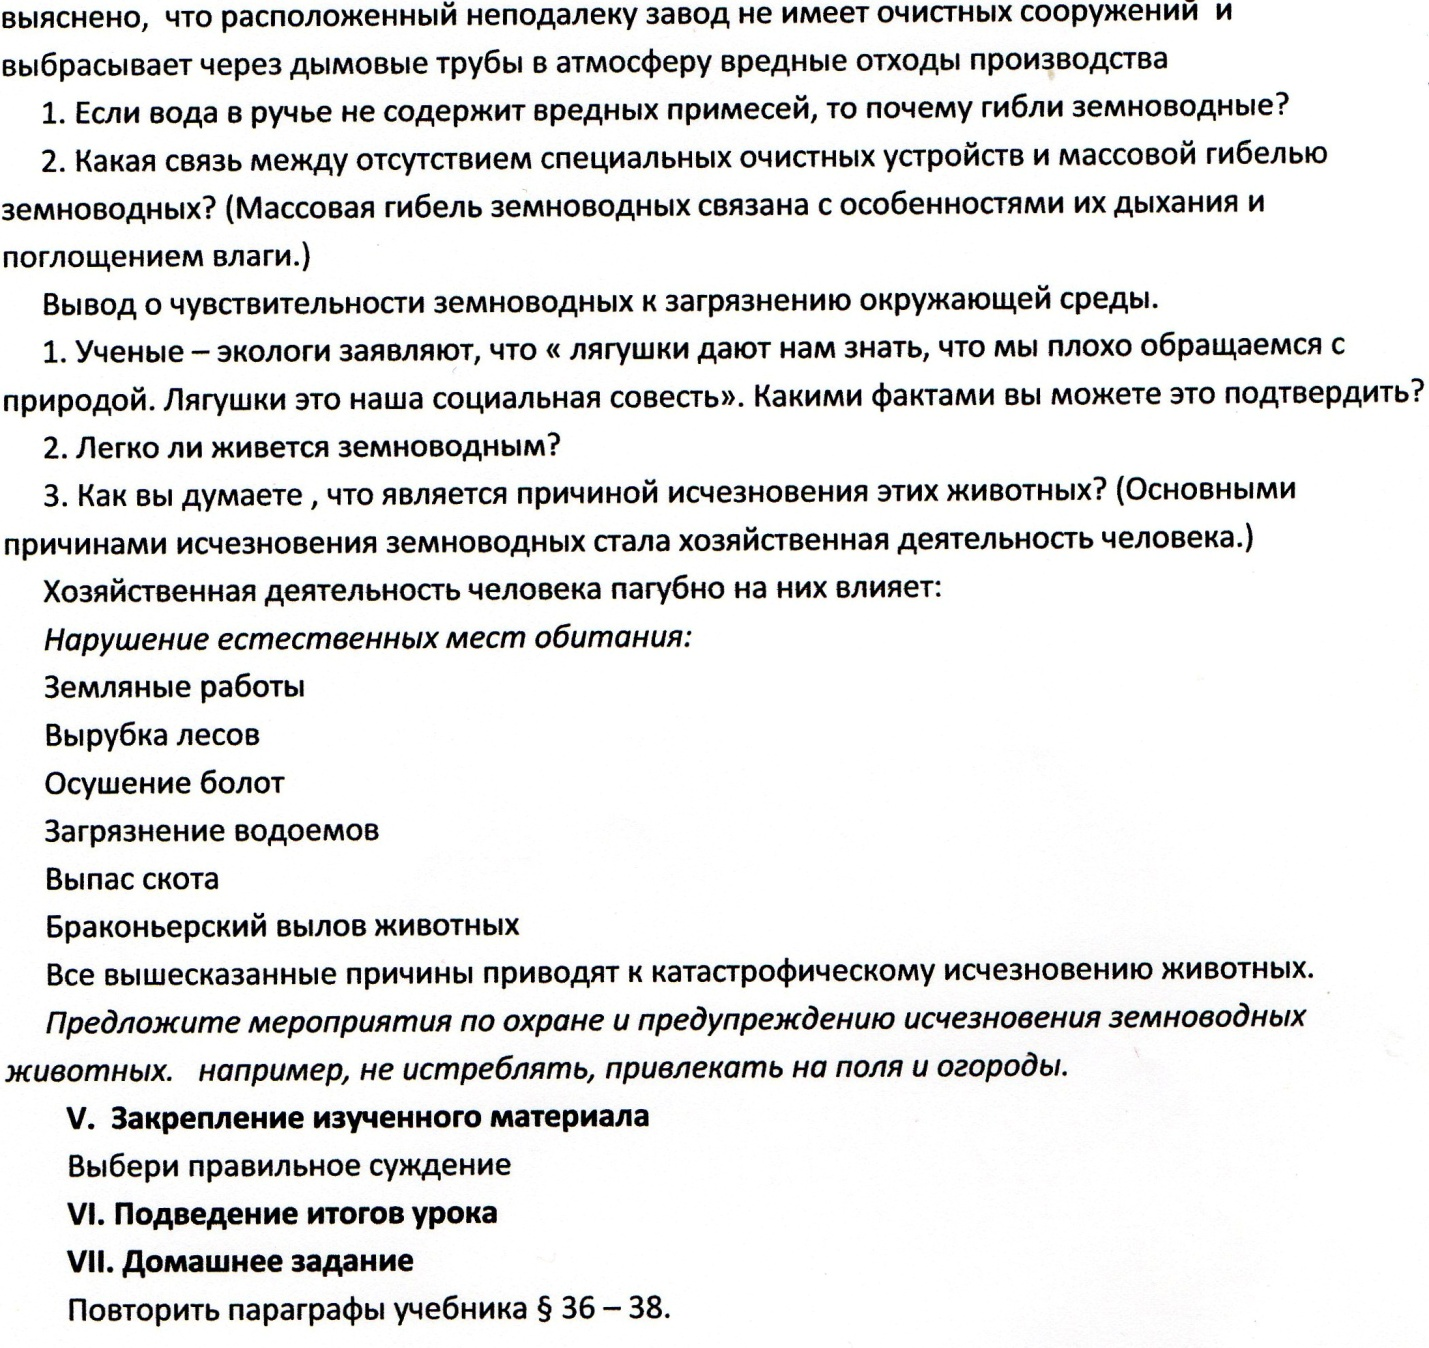 C:\Users\Лена\Pictures\img039.jpg